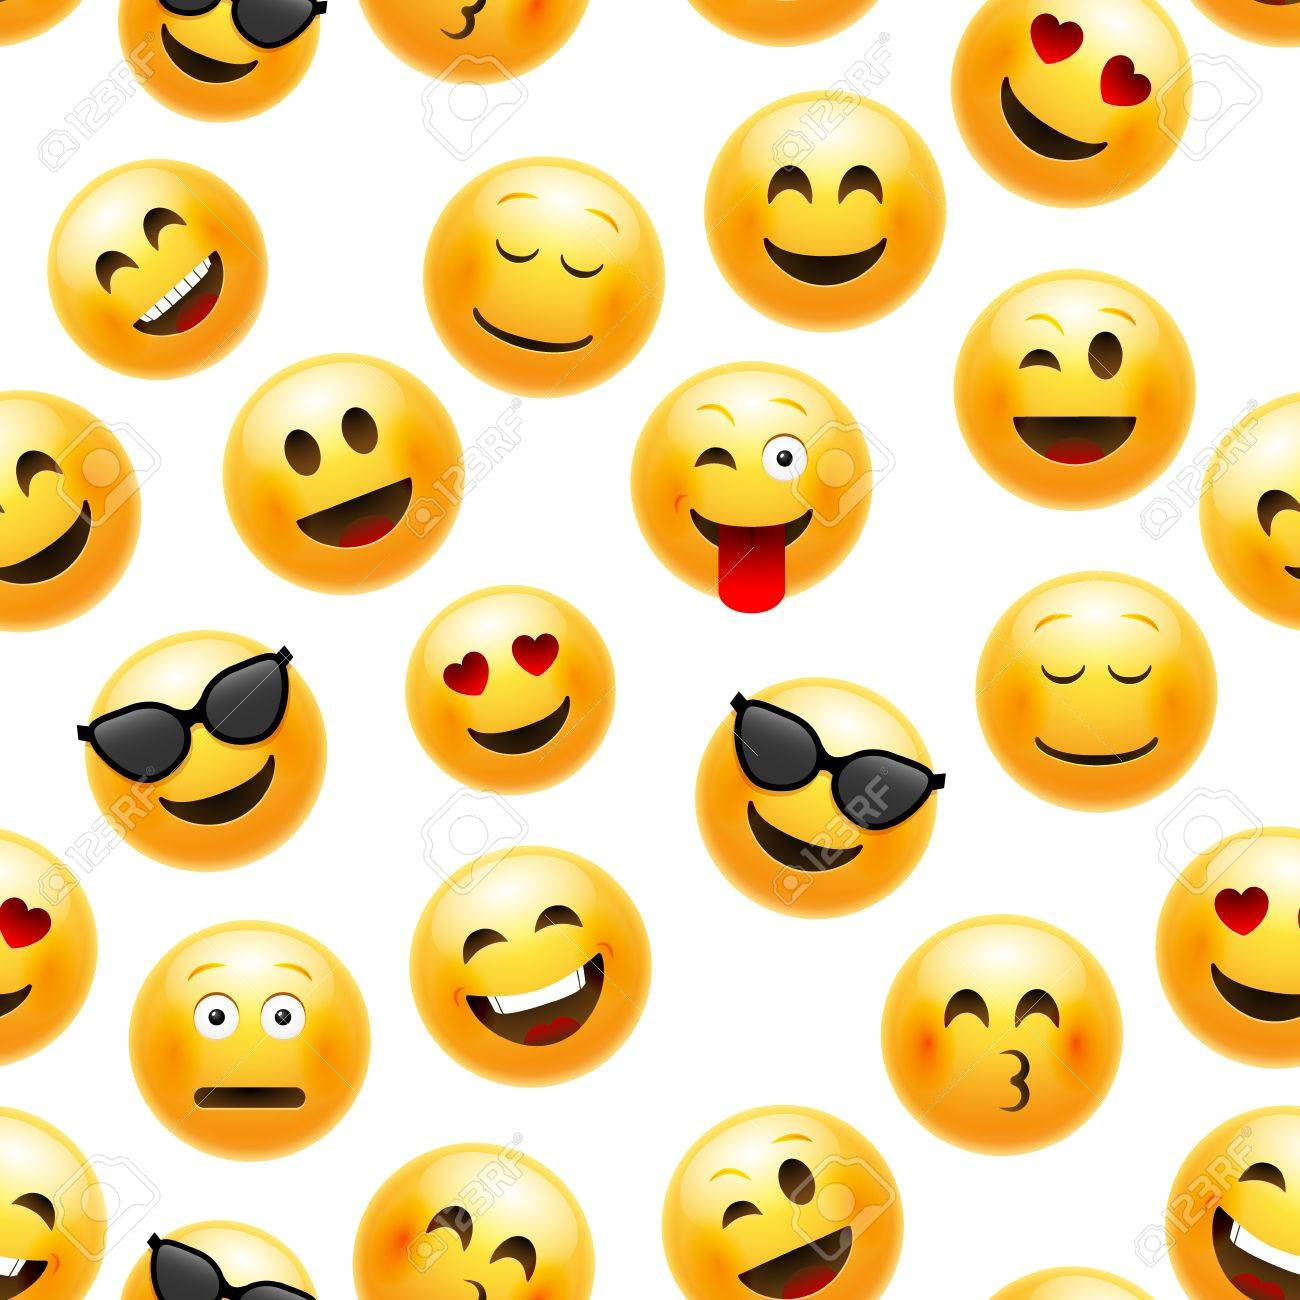 Emoji seamless pattern. Vector smiley face character illustration on white. - 87611963